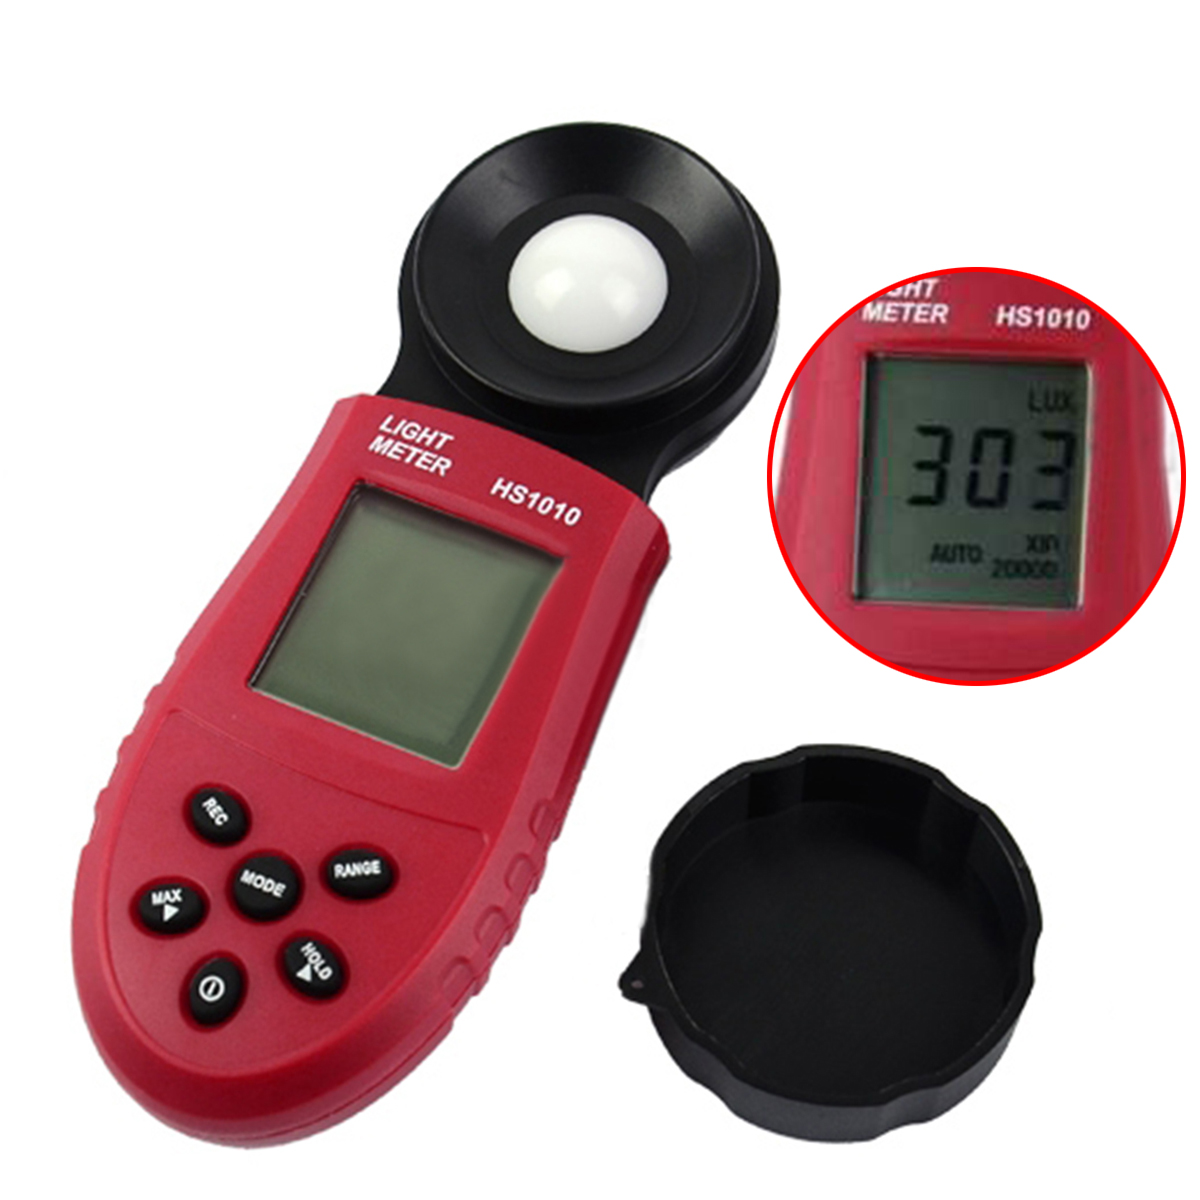 1pc Precision 200,000 Lux Light Meter Digital Light Meter Luxmeter Lux/FC Meter Luminometer Photometer Tester лак для ногтей orly permanent collection 732 цвет 732 snowcone variant hex name 5091cd